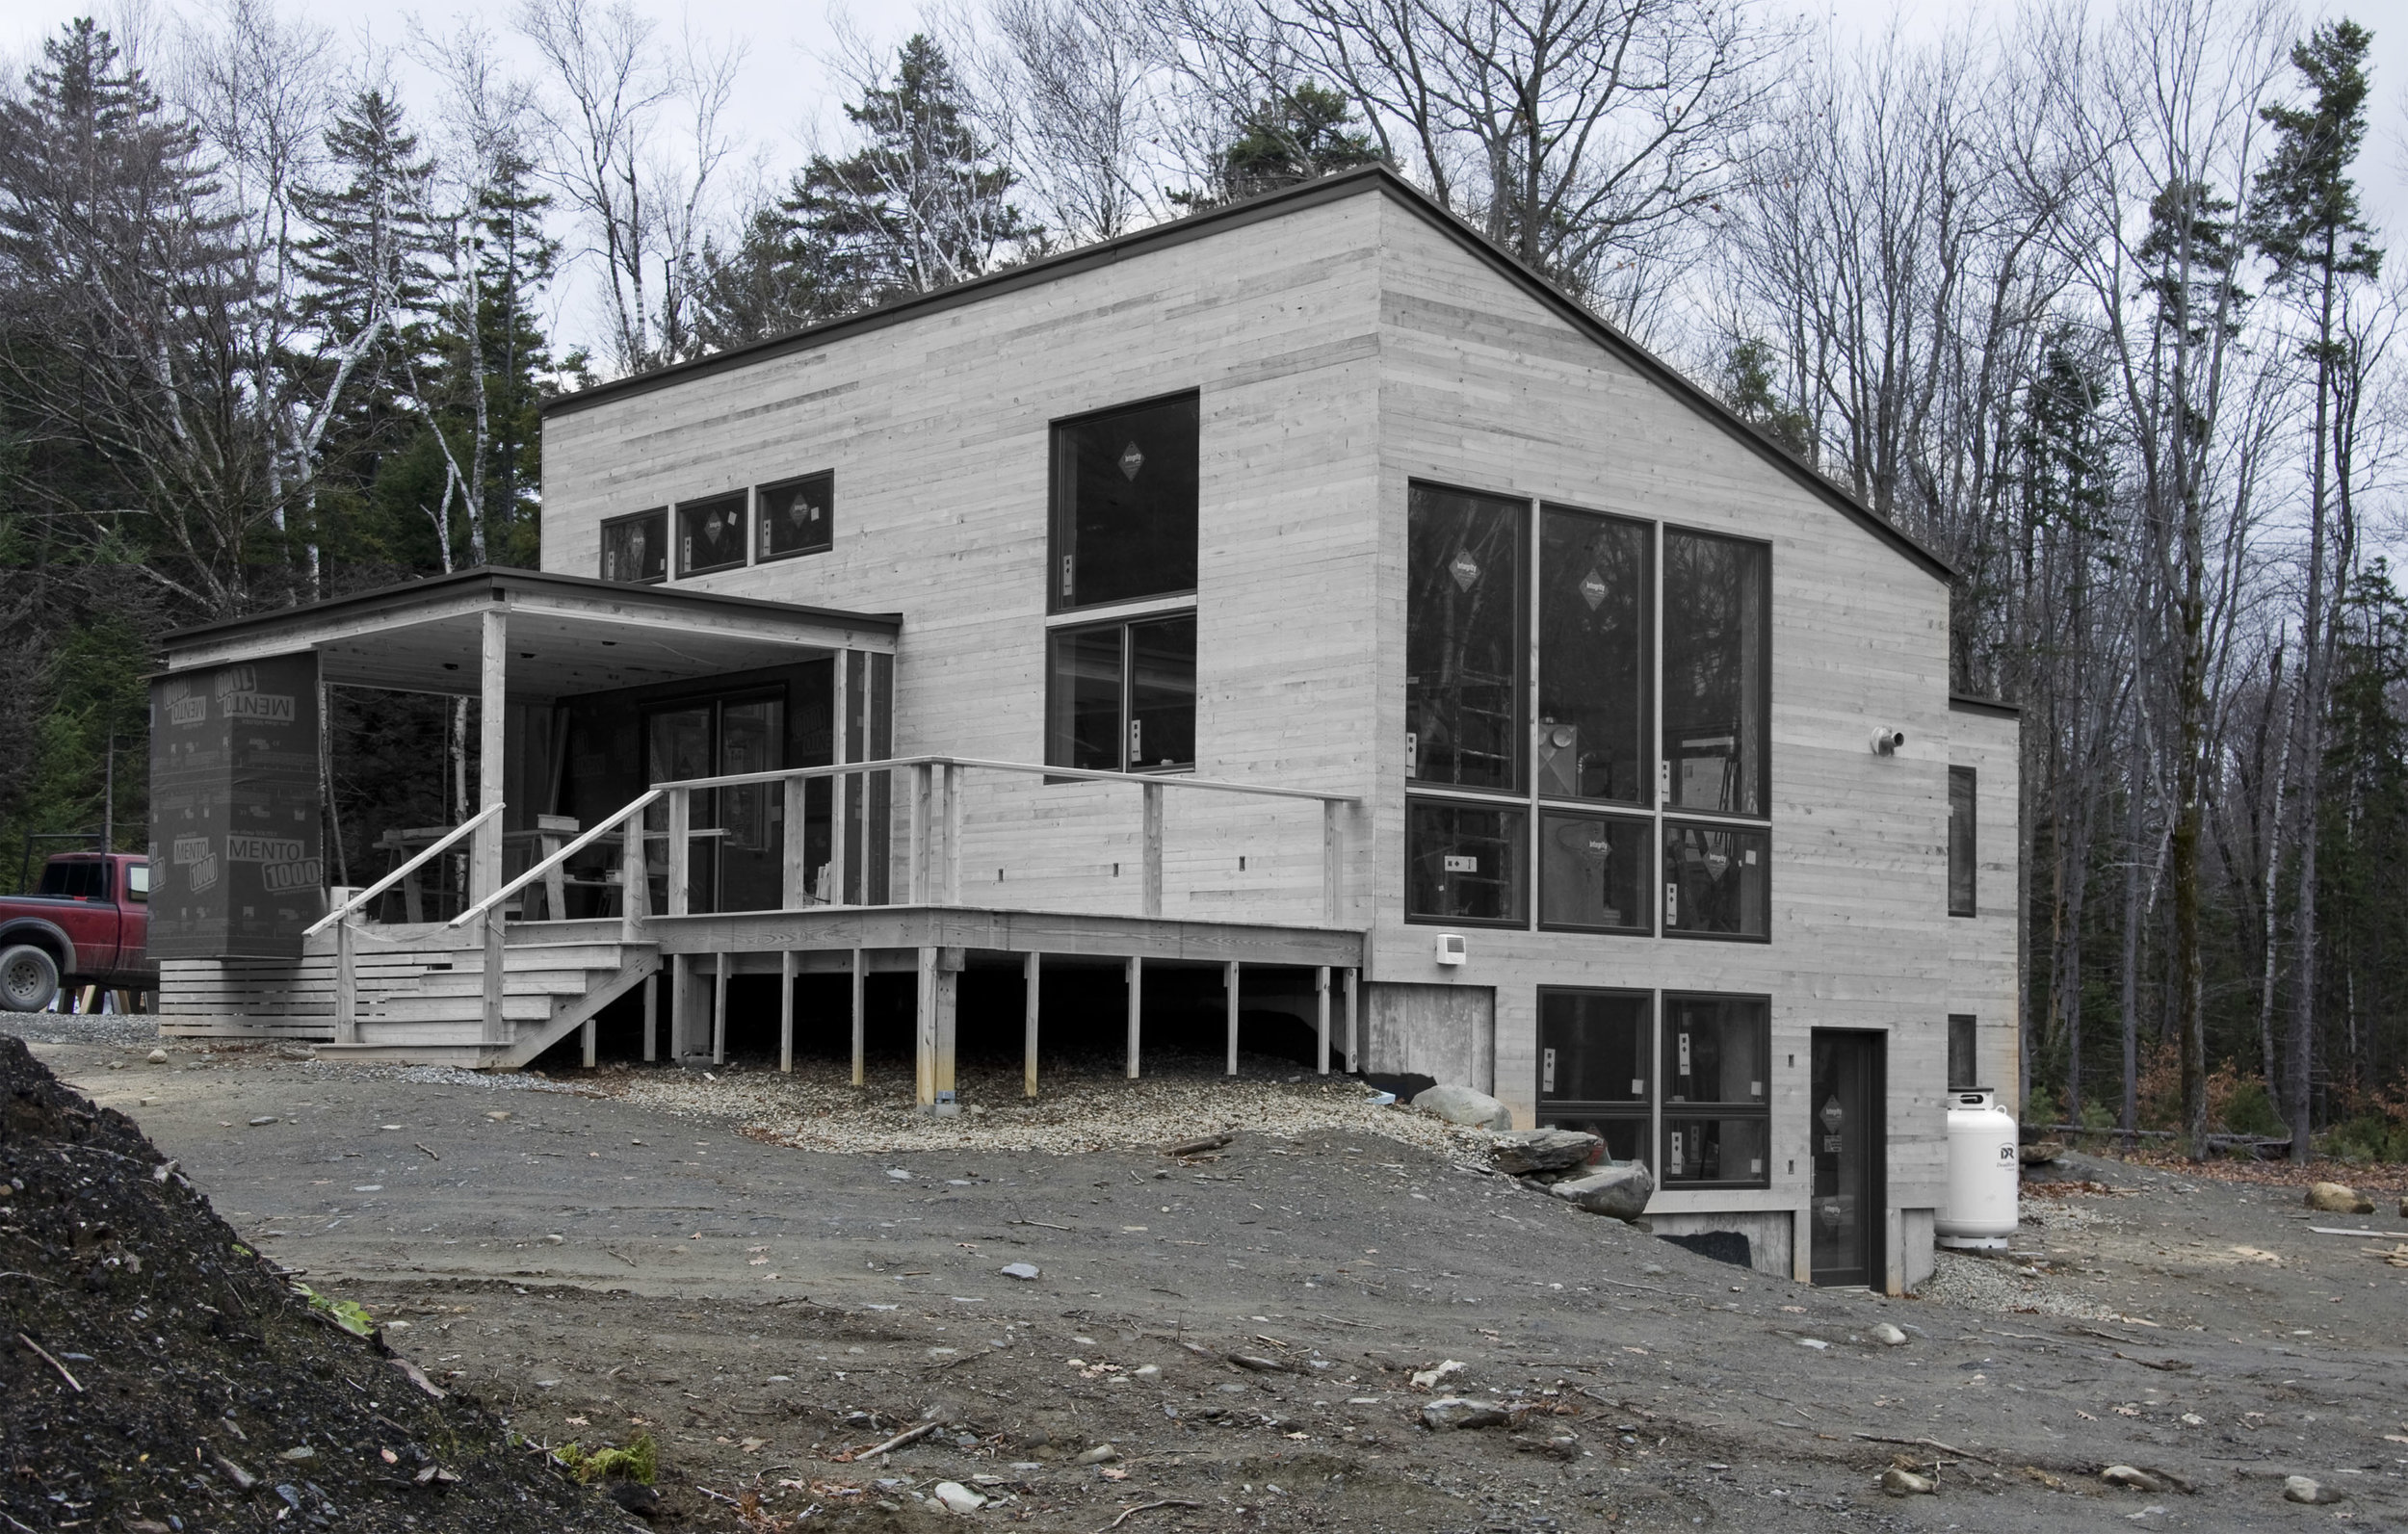 Vermont modern house by architect Robert Swinburne